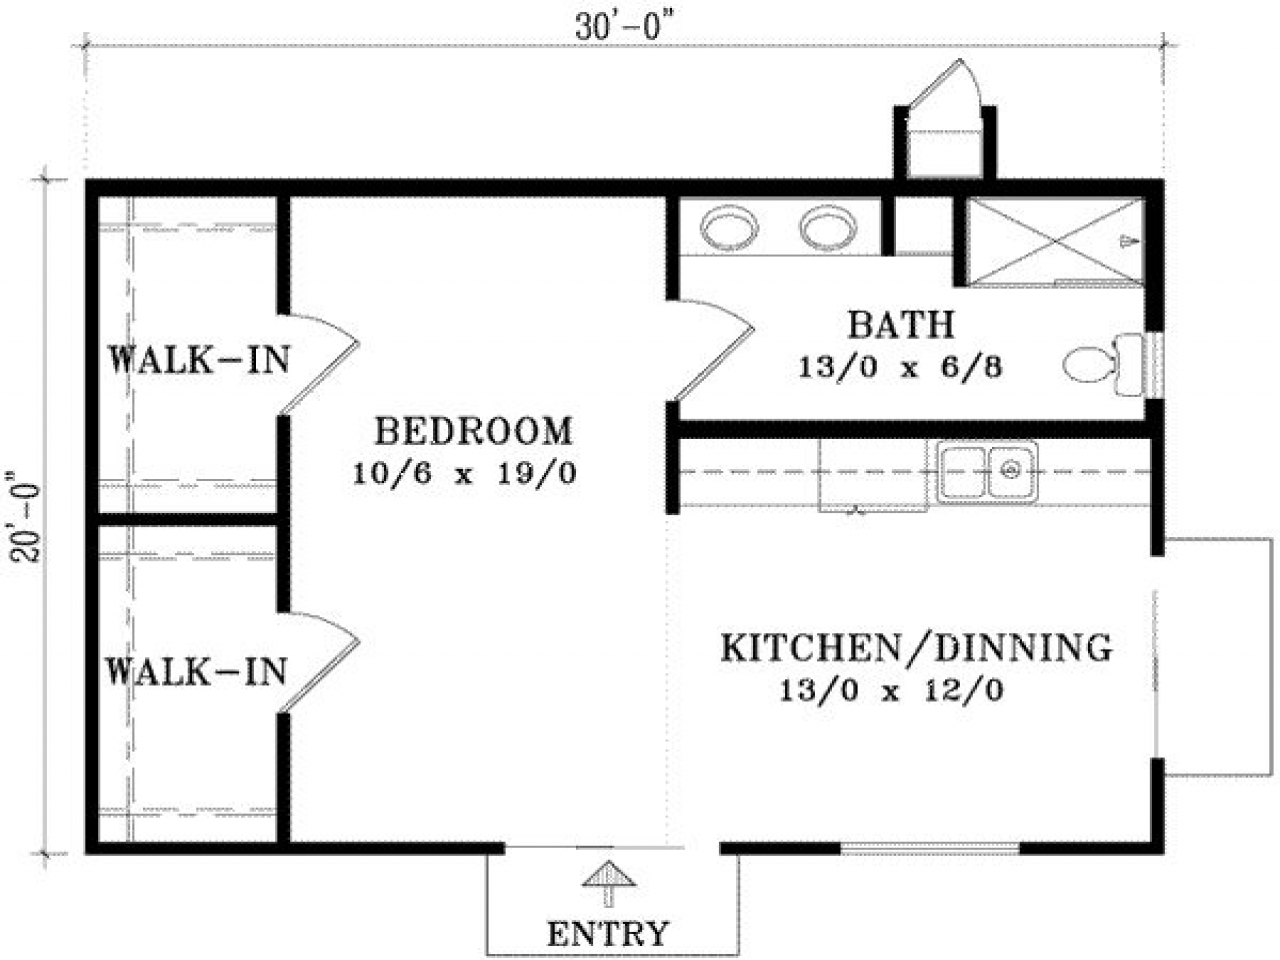 600 square feet house plans 600 sq ft cottages 600 sq ft for 600 square foot home